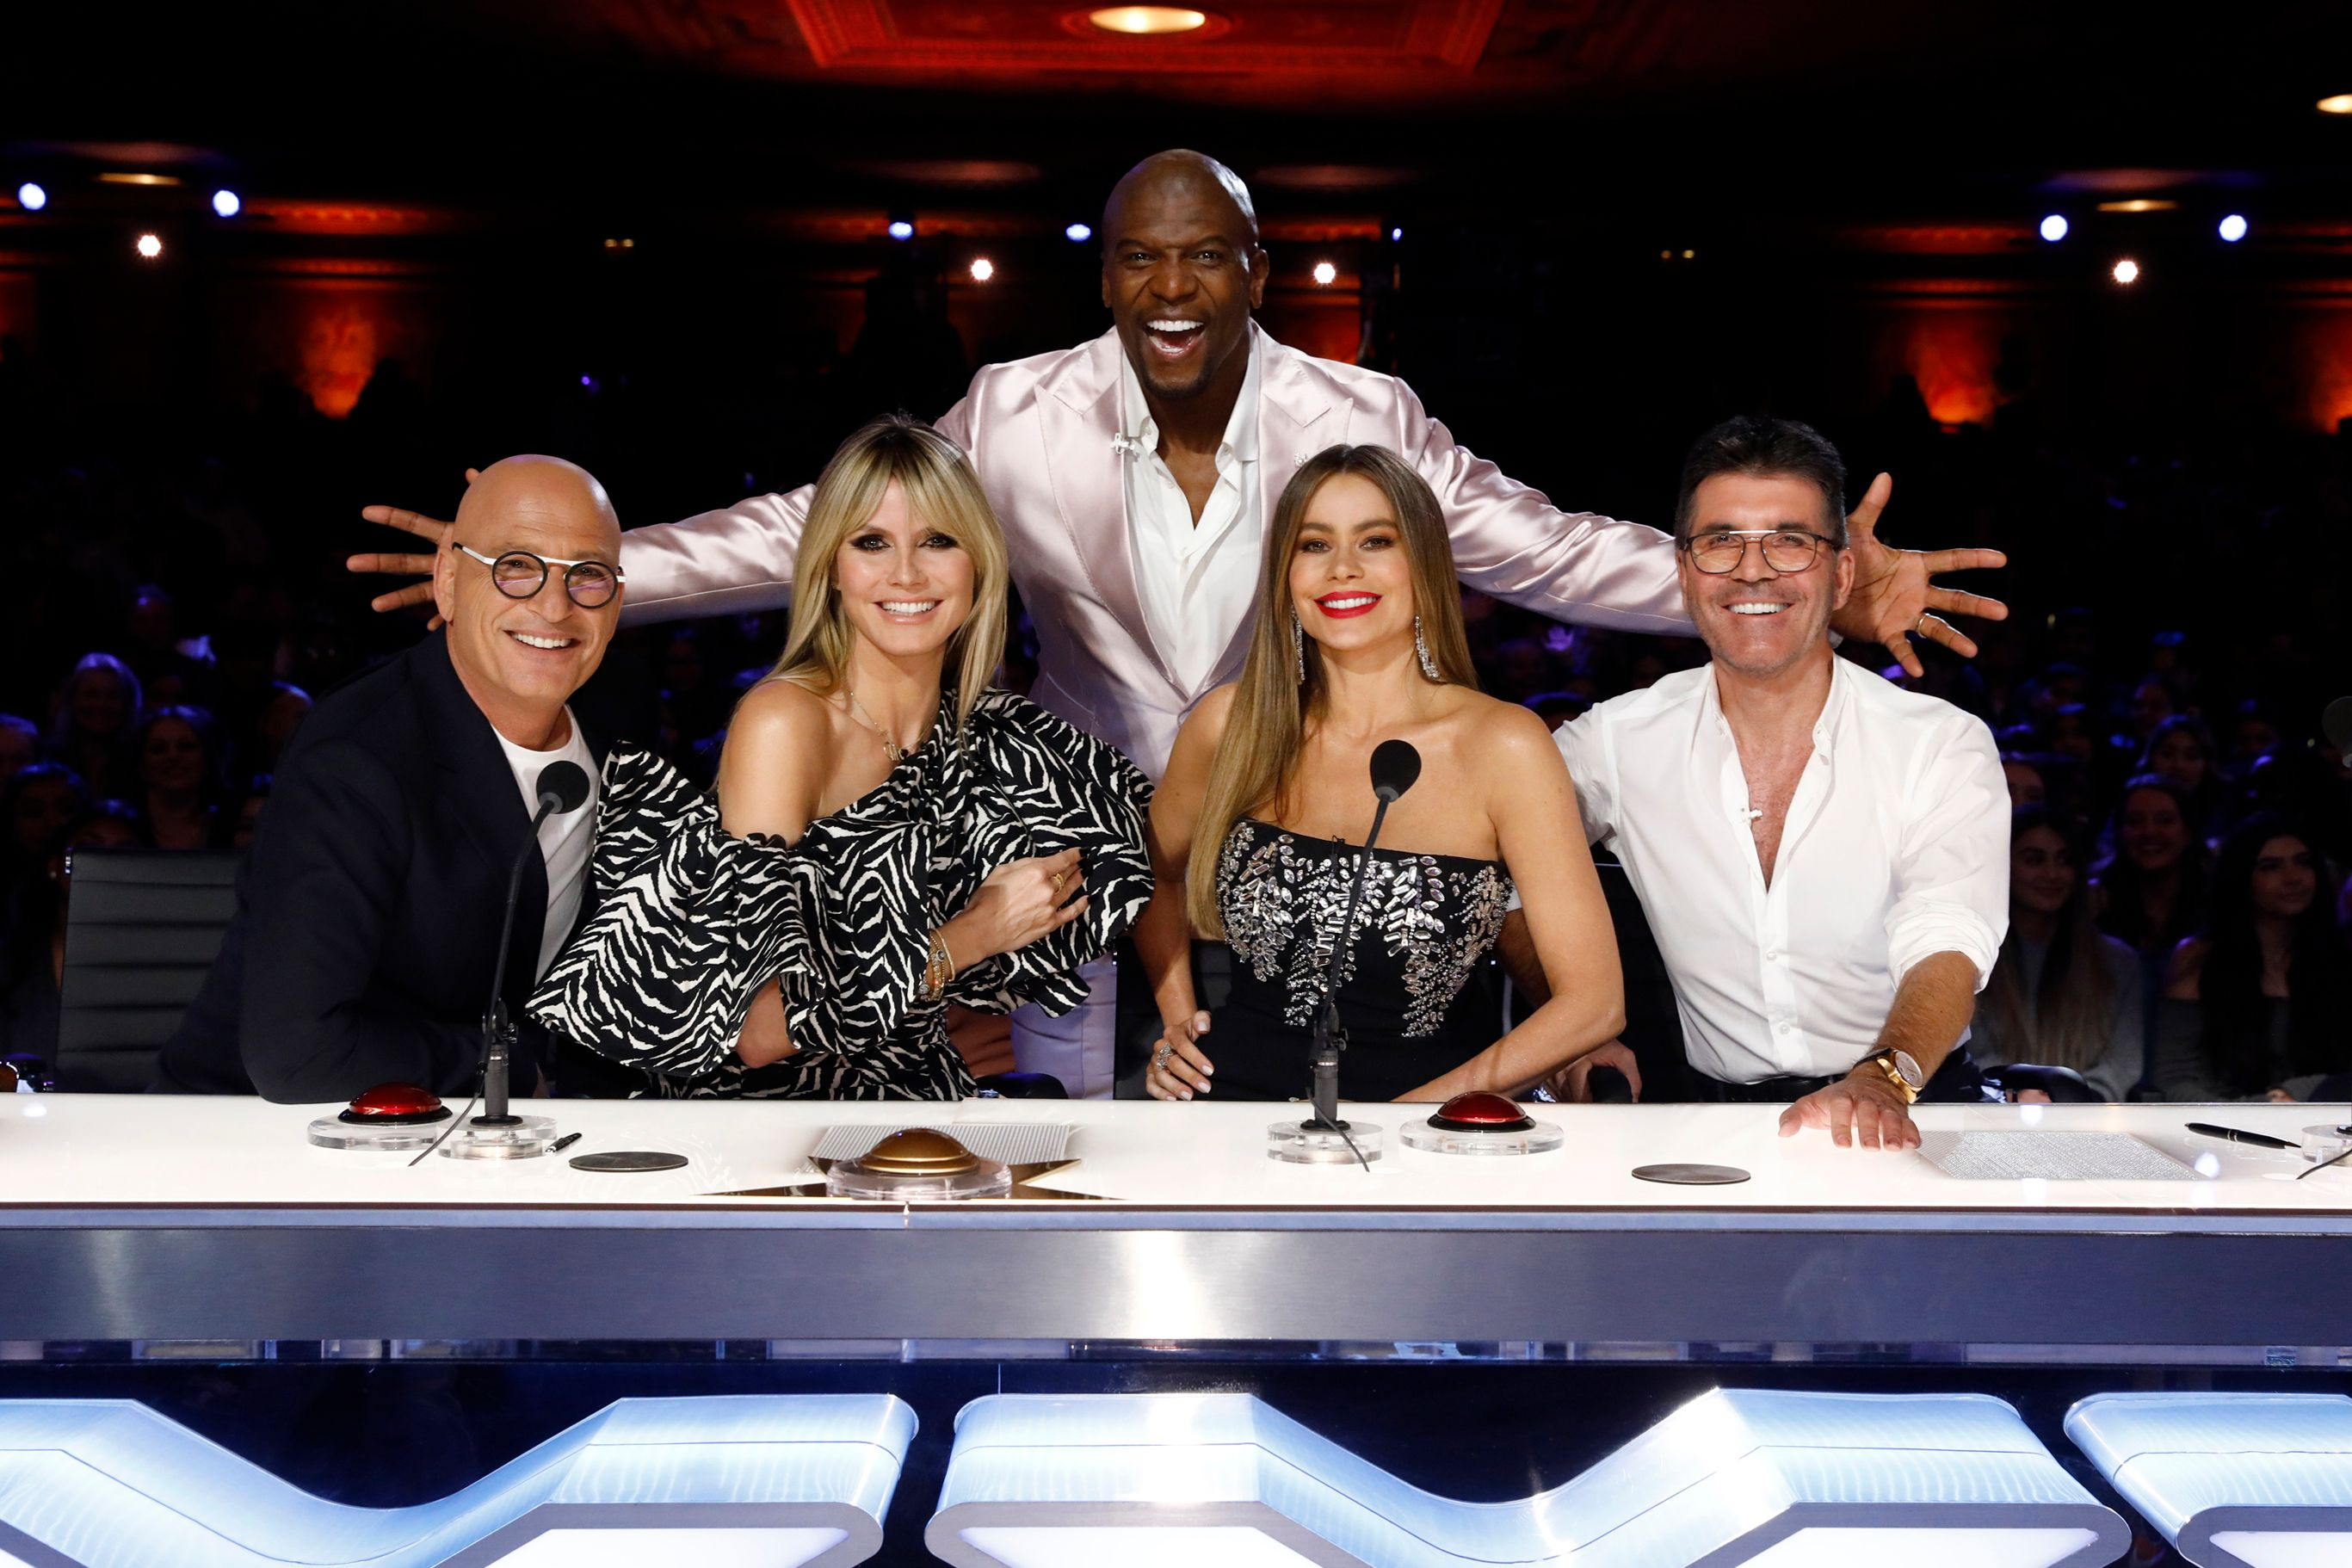 """Howie Mandel, Heidi Klum, Terry Crews, Sofia Vergara, and Simon Cowell on """"America's Got Talent"""" auditions on March 02, 2020 